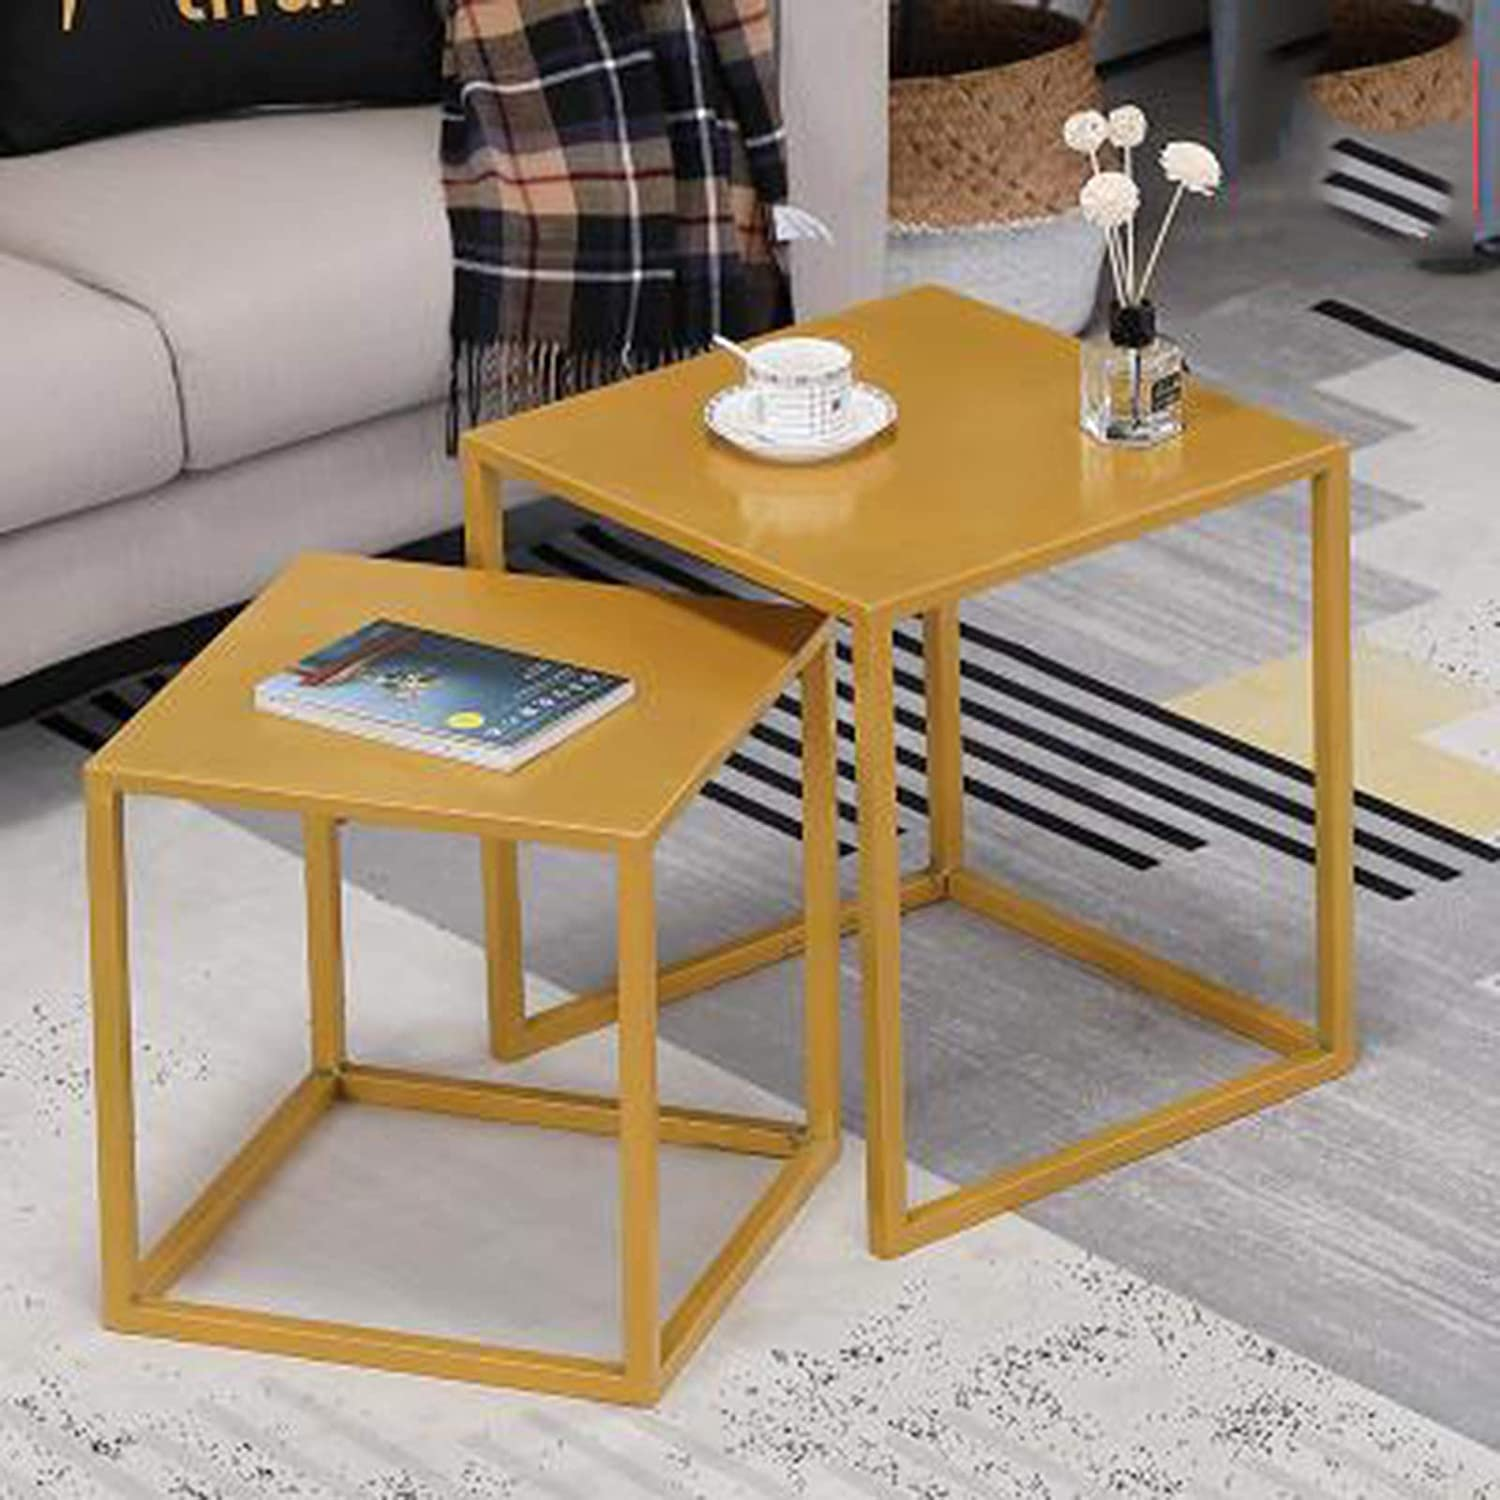 Nest Tables Glossy Coffee Table Set Tables Black Gold Yellow Nesting Tables,Yellow Nesting Small Coffee Table